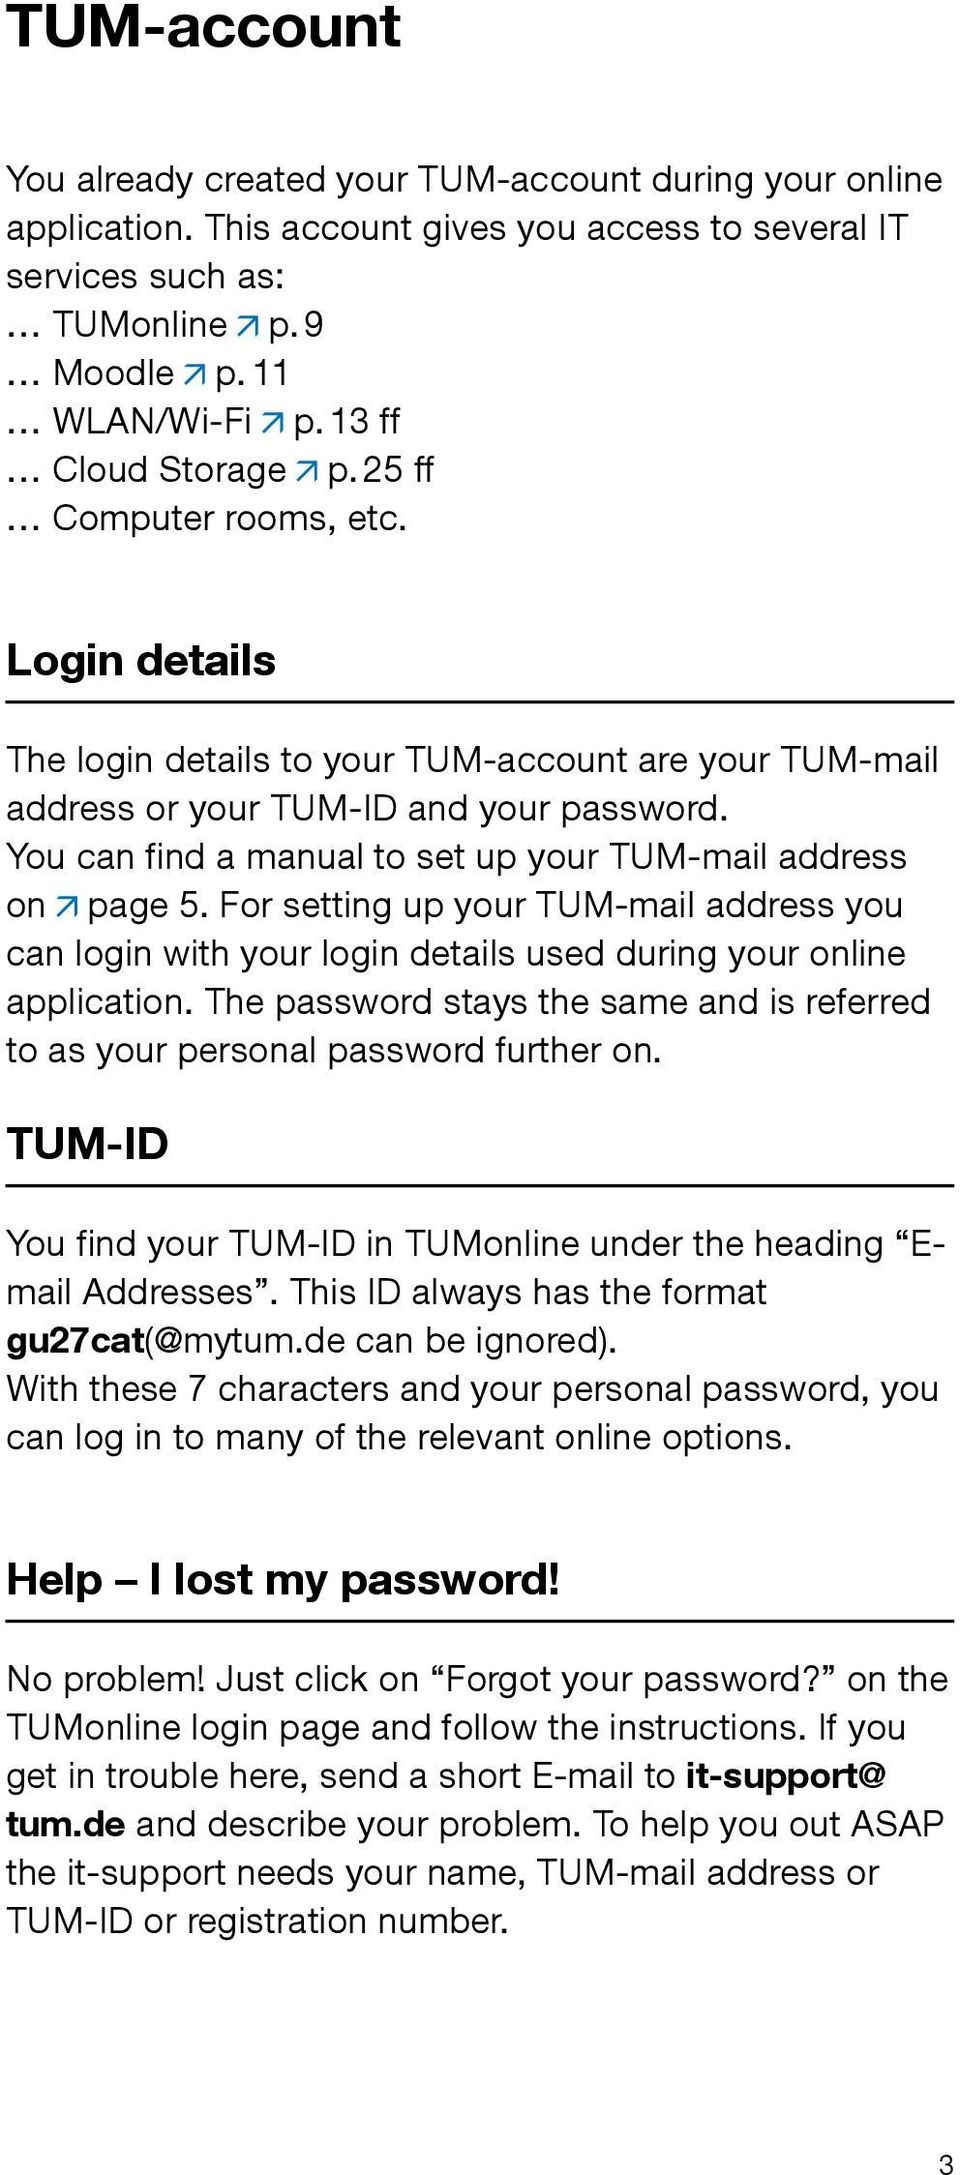 You can find a manual to set up your TUM-mail address on page 5. For setting up your TUM-mail address you can login with your login details used during your online application.